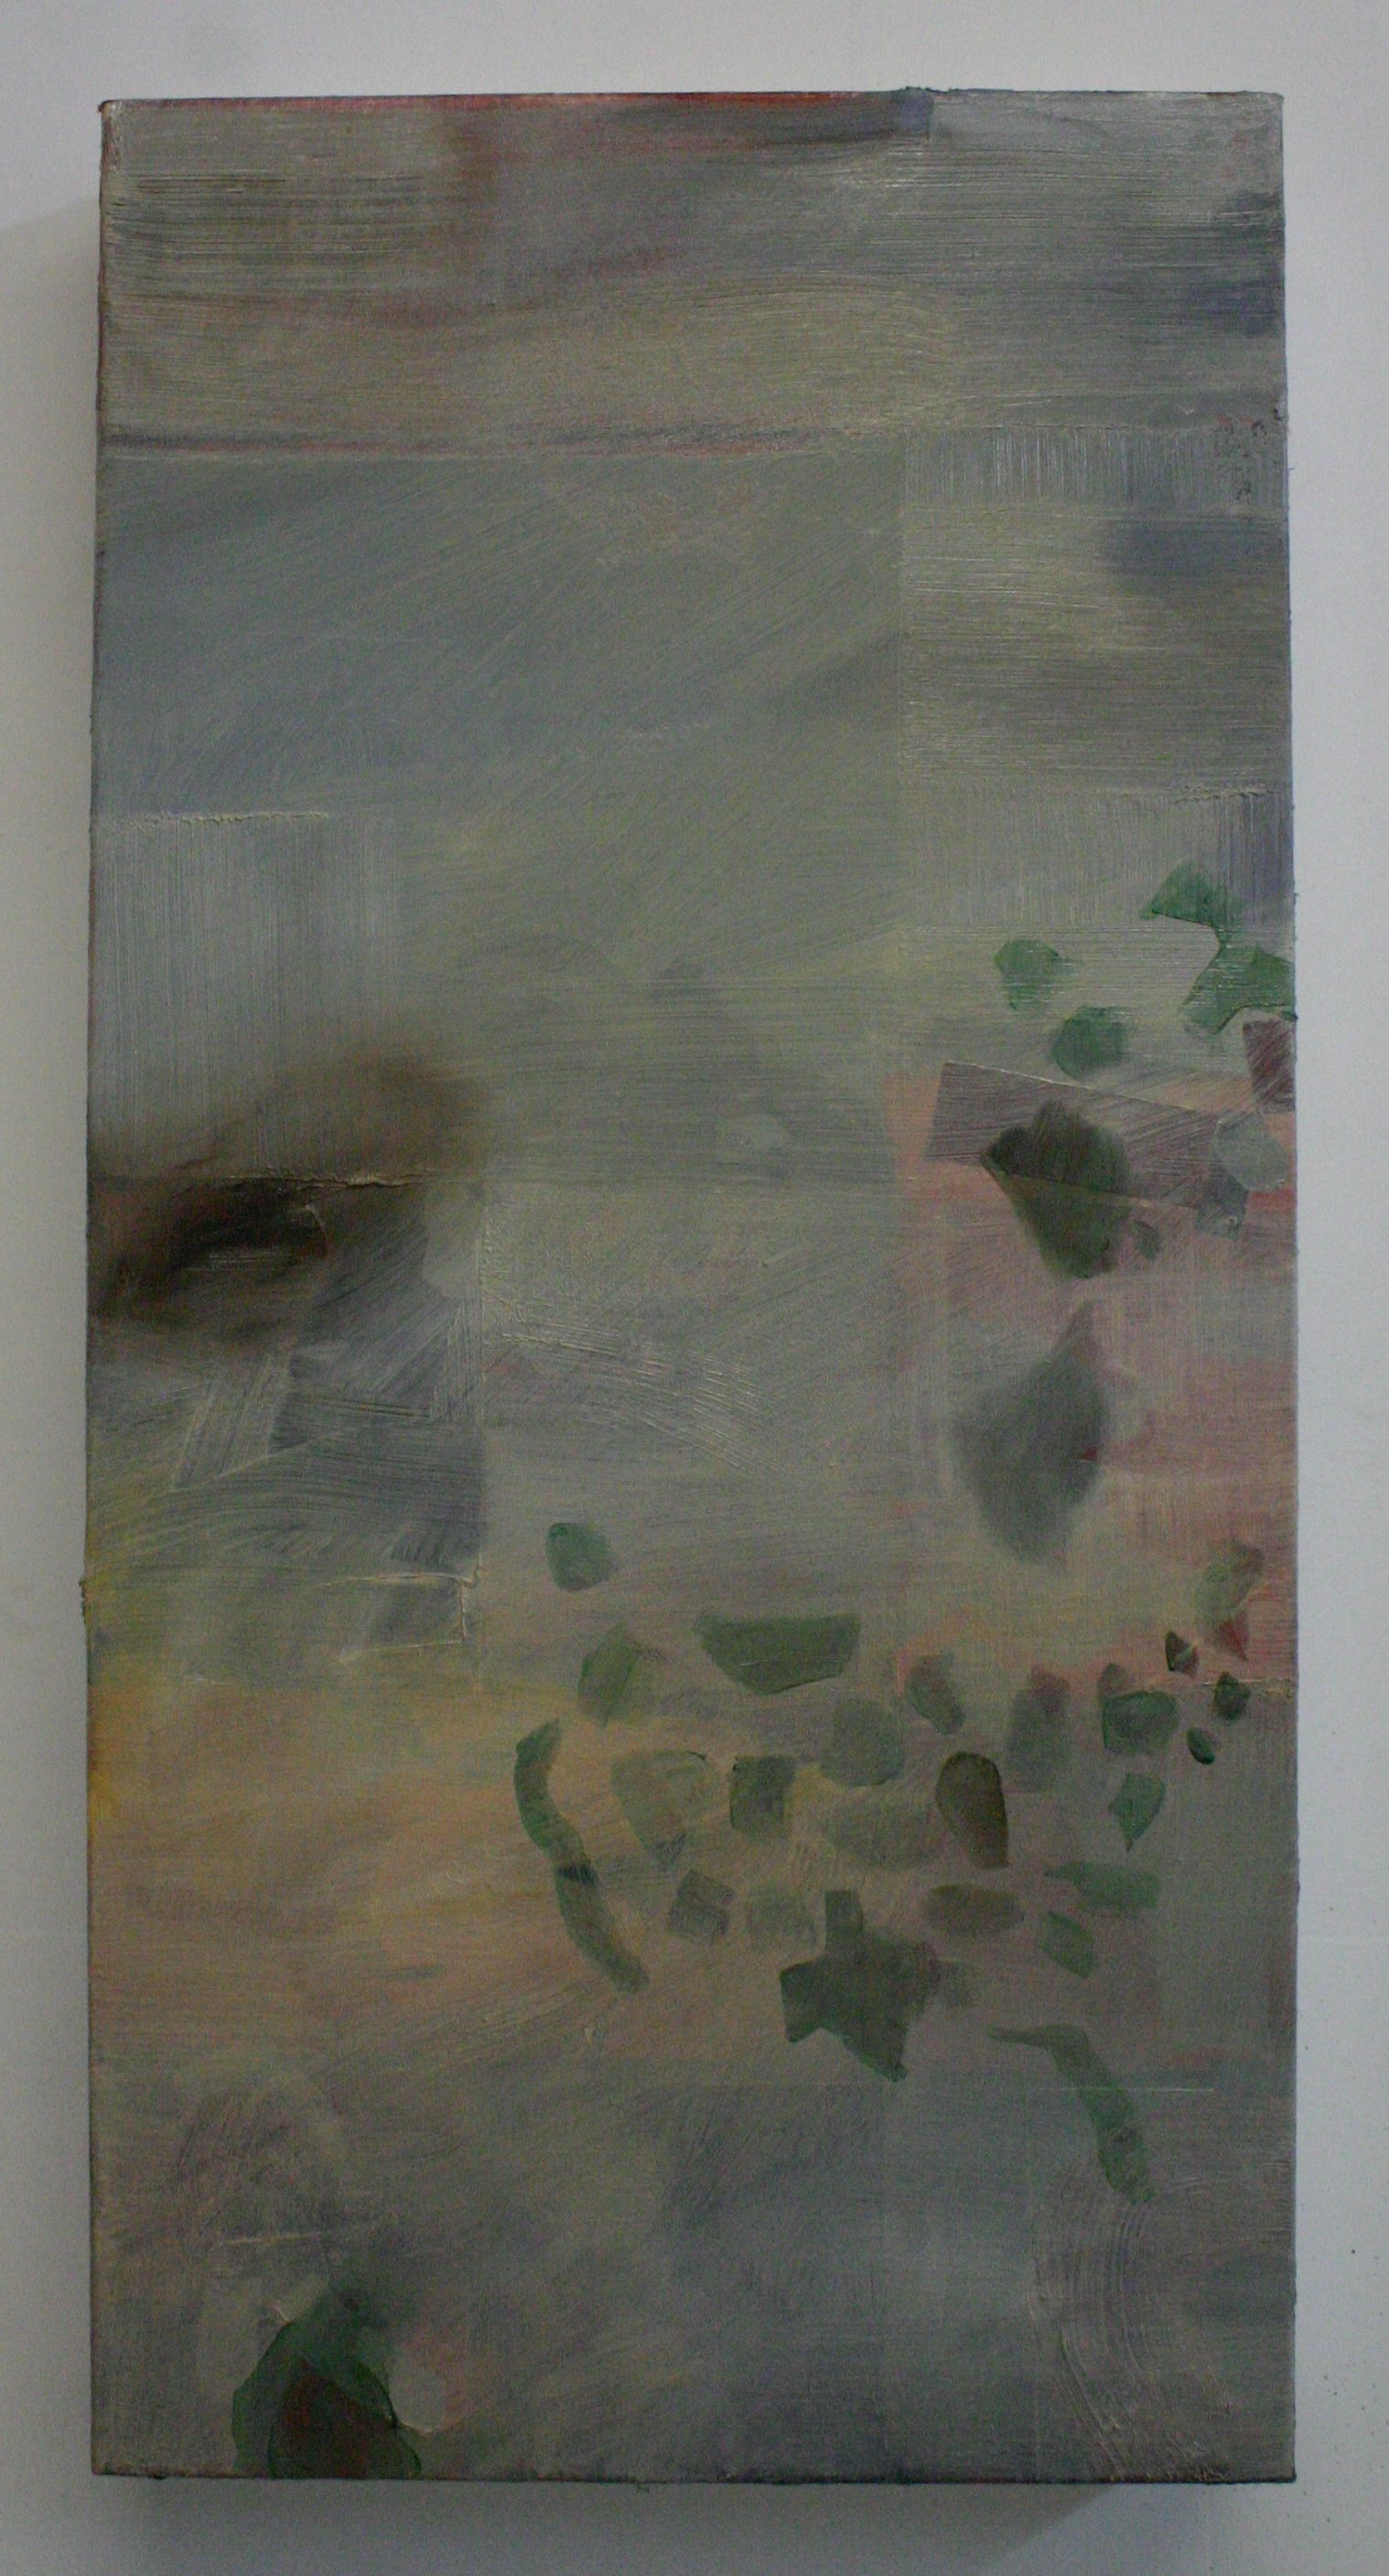 Fifty Nifty, 2012, oil on canvas, 30 x 15 inches